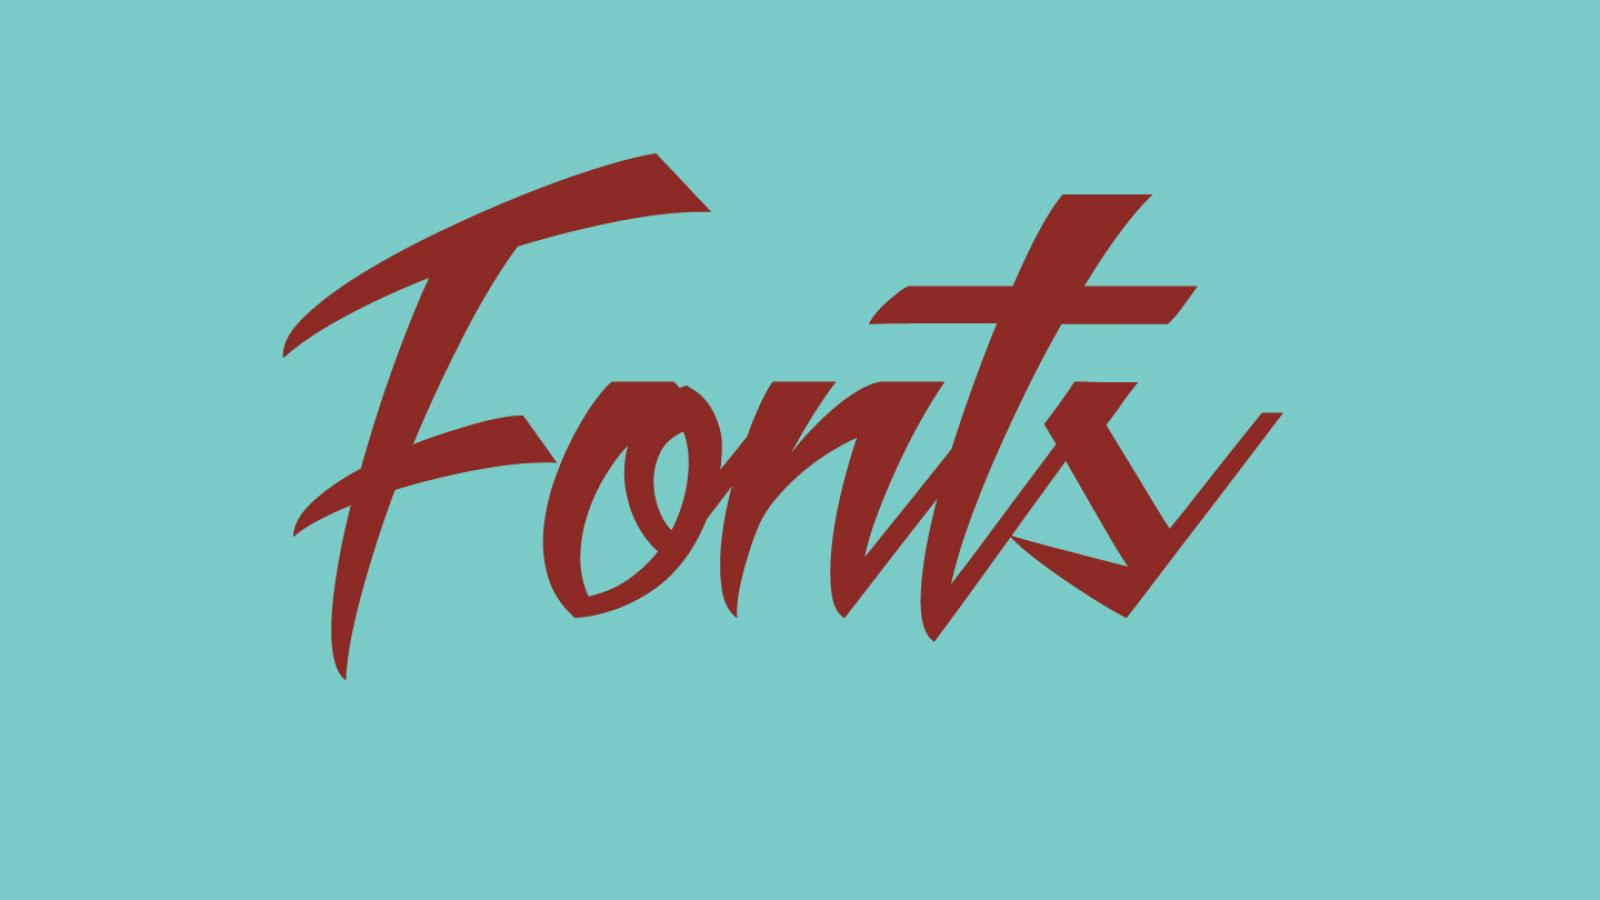 Friday Fresh Free Fonts - Mad Rats, Cloud Sans